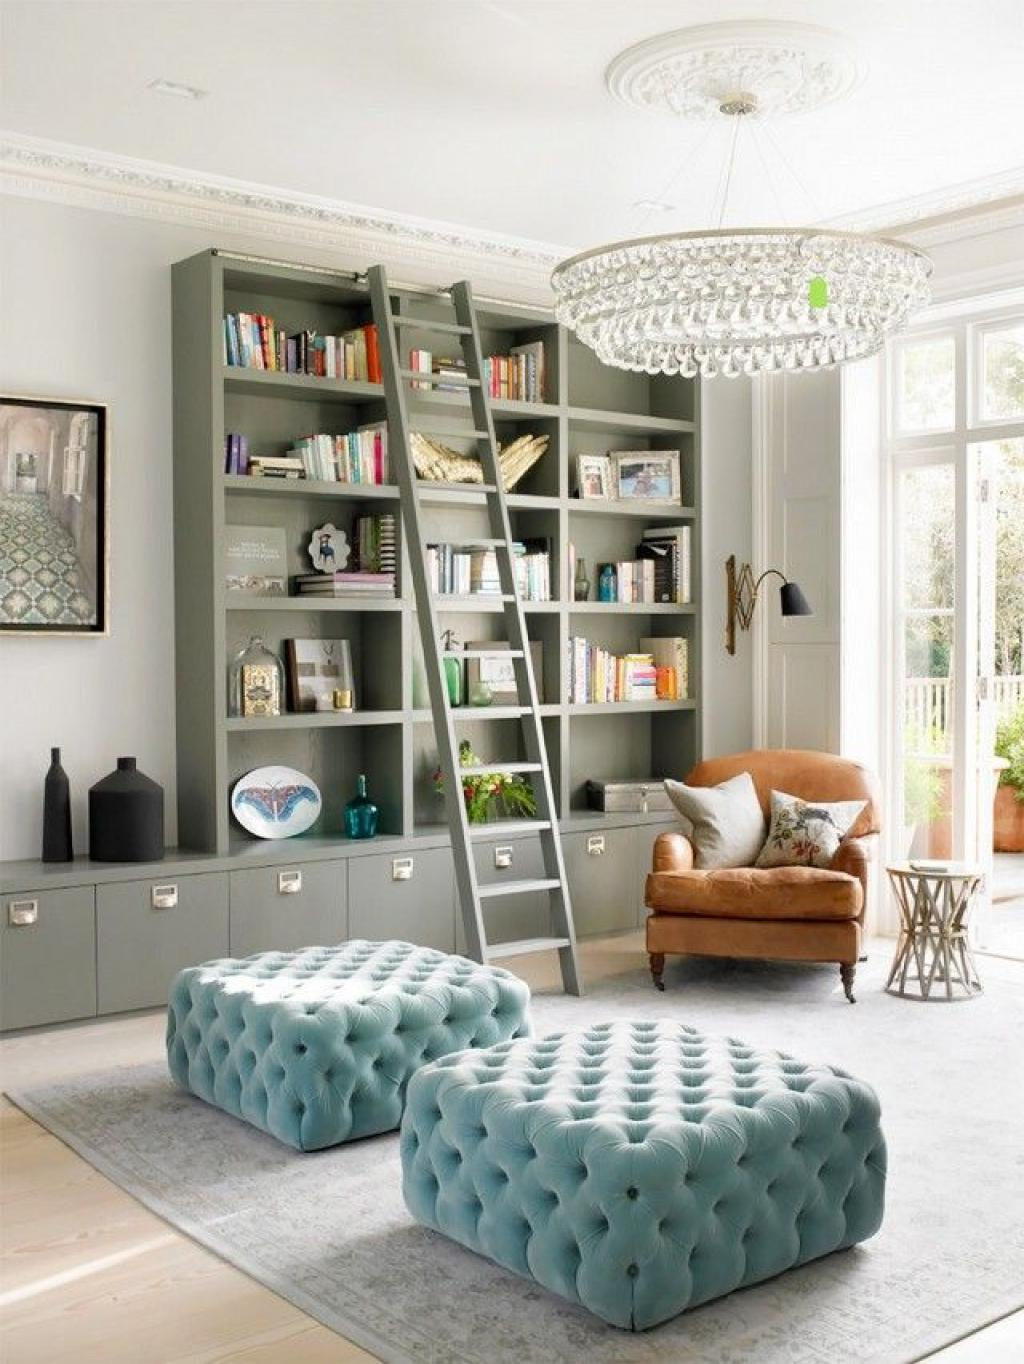 Amazing Reading Room with Comfy Leather Reading Chair and Modern Tufted Blue ottoman and Glass Chandelier